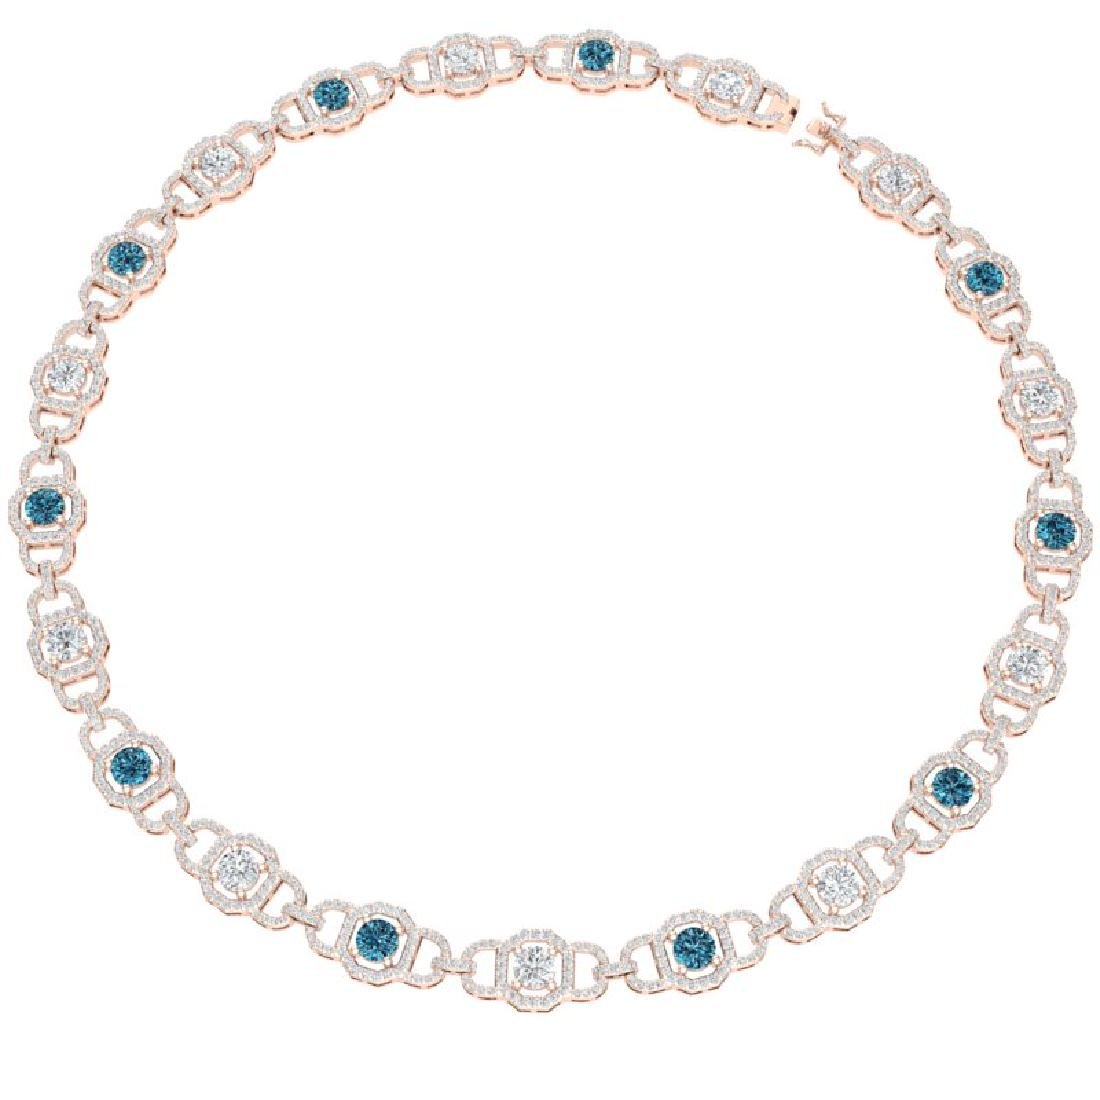 25 CTW SI/I Intense Blue And White Diamond Necklace 18K - 3